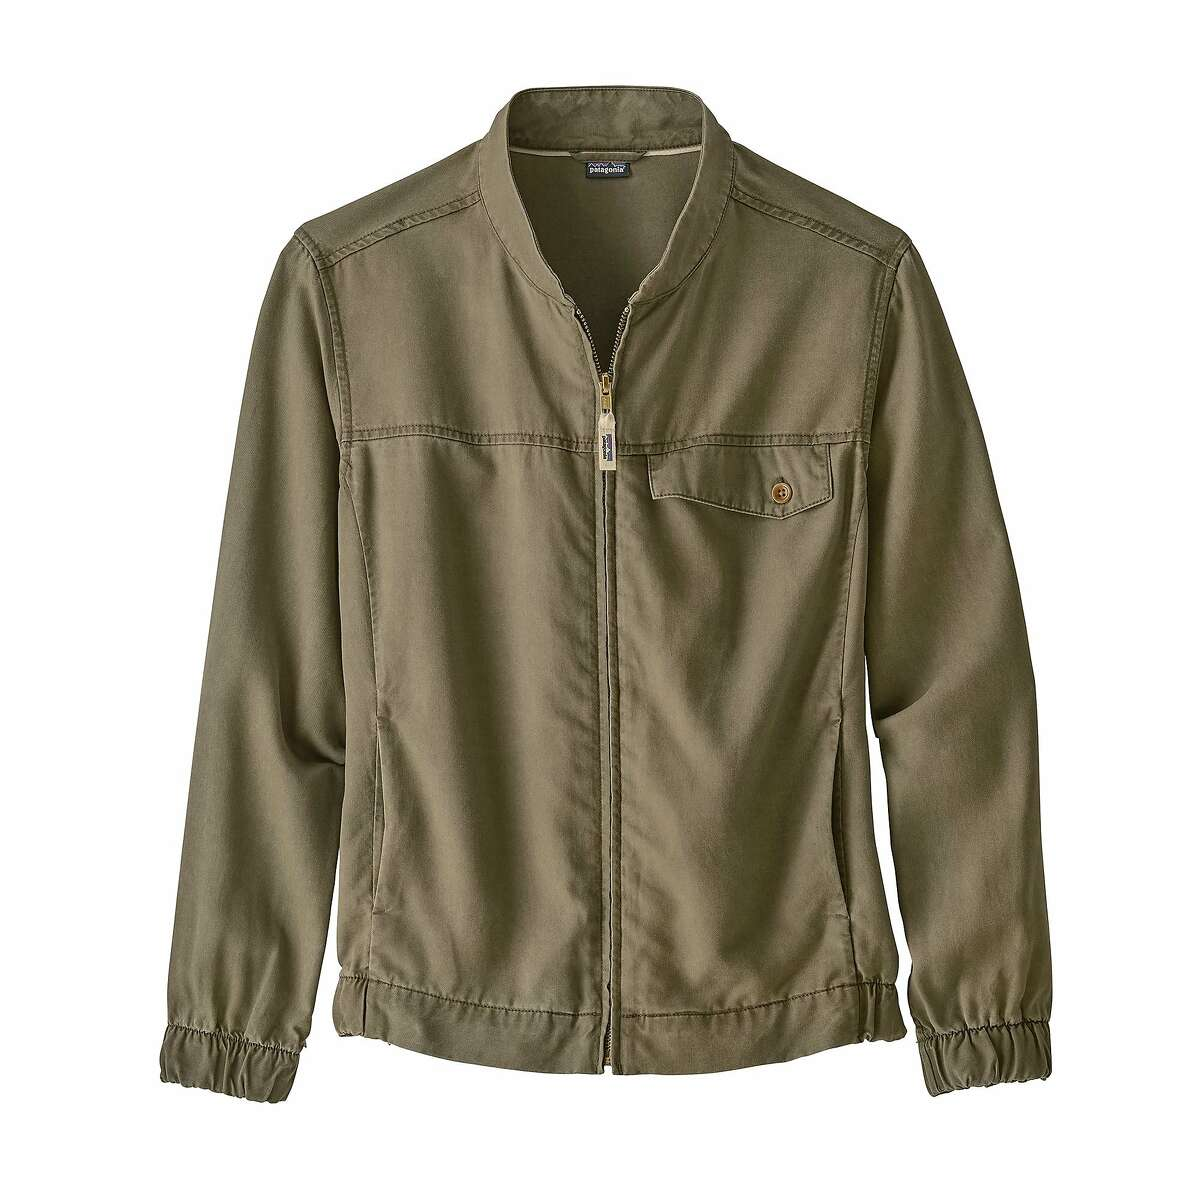 Patagonia�s ReCircle line is made from Refibra lyocell fabric, of 80 percent wood pulp from sustainably managed forests and 20 percent recycled cotton scraps.